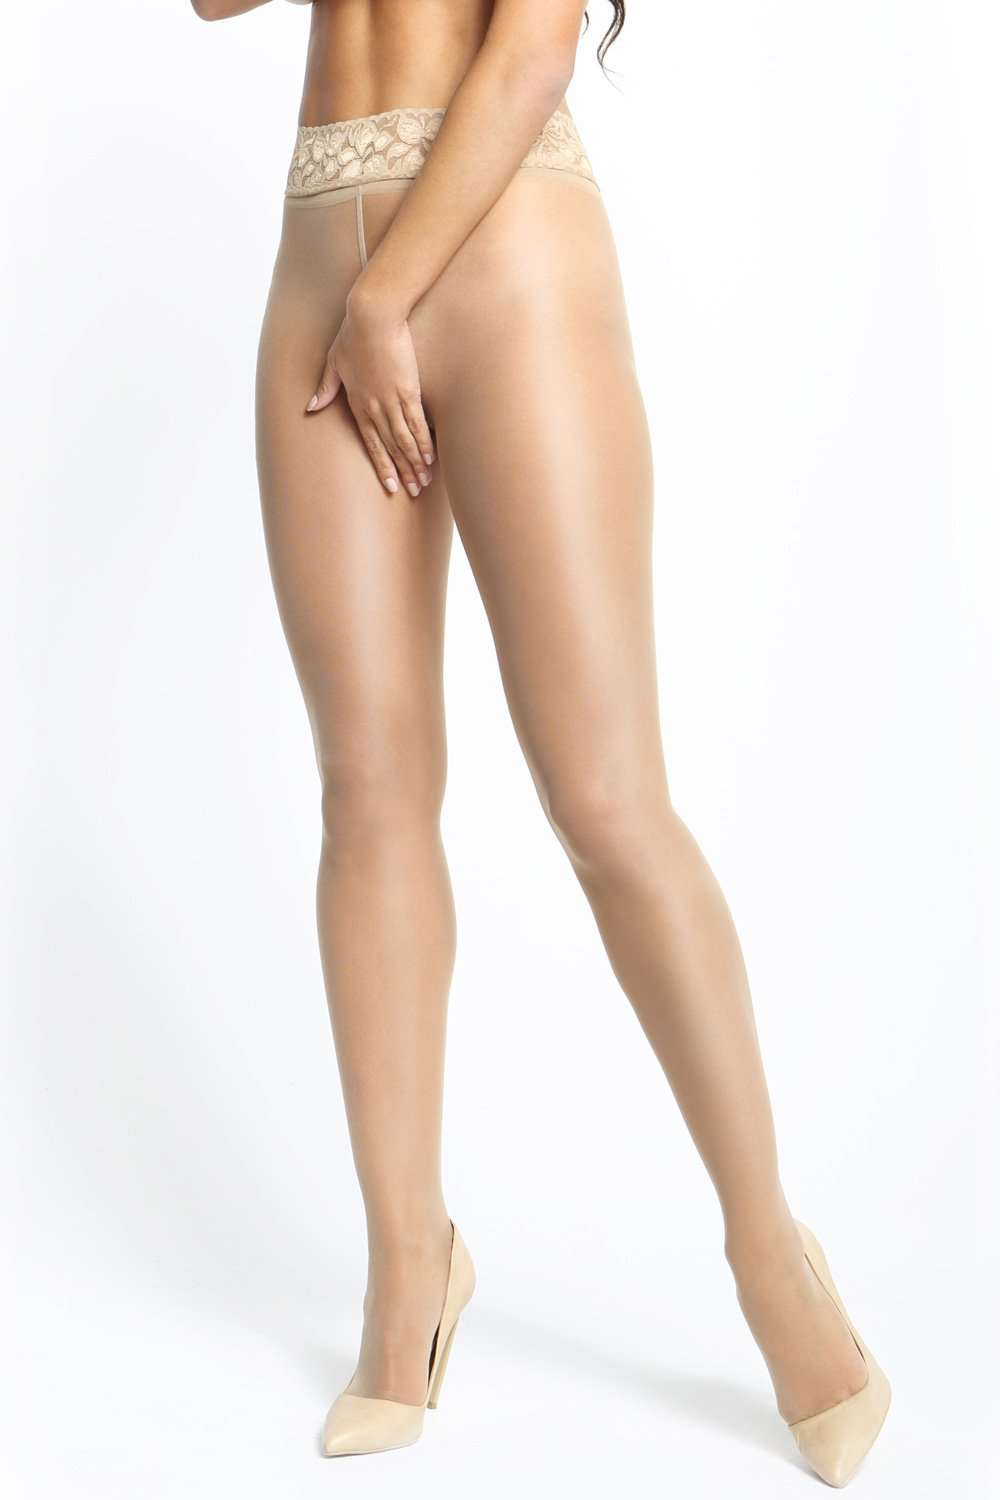 missO 20 Denier Tights - Summer Hosiery - Naughty Knickers